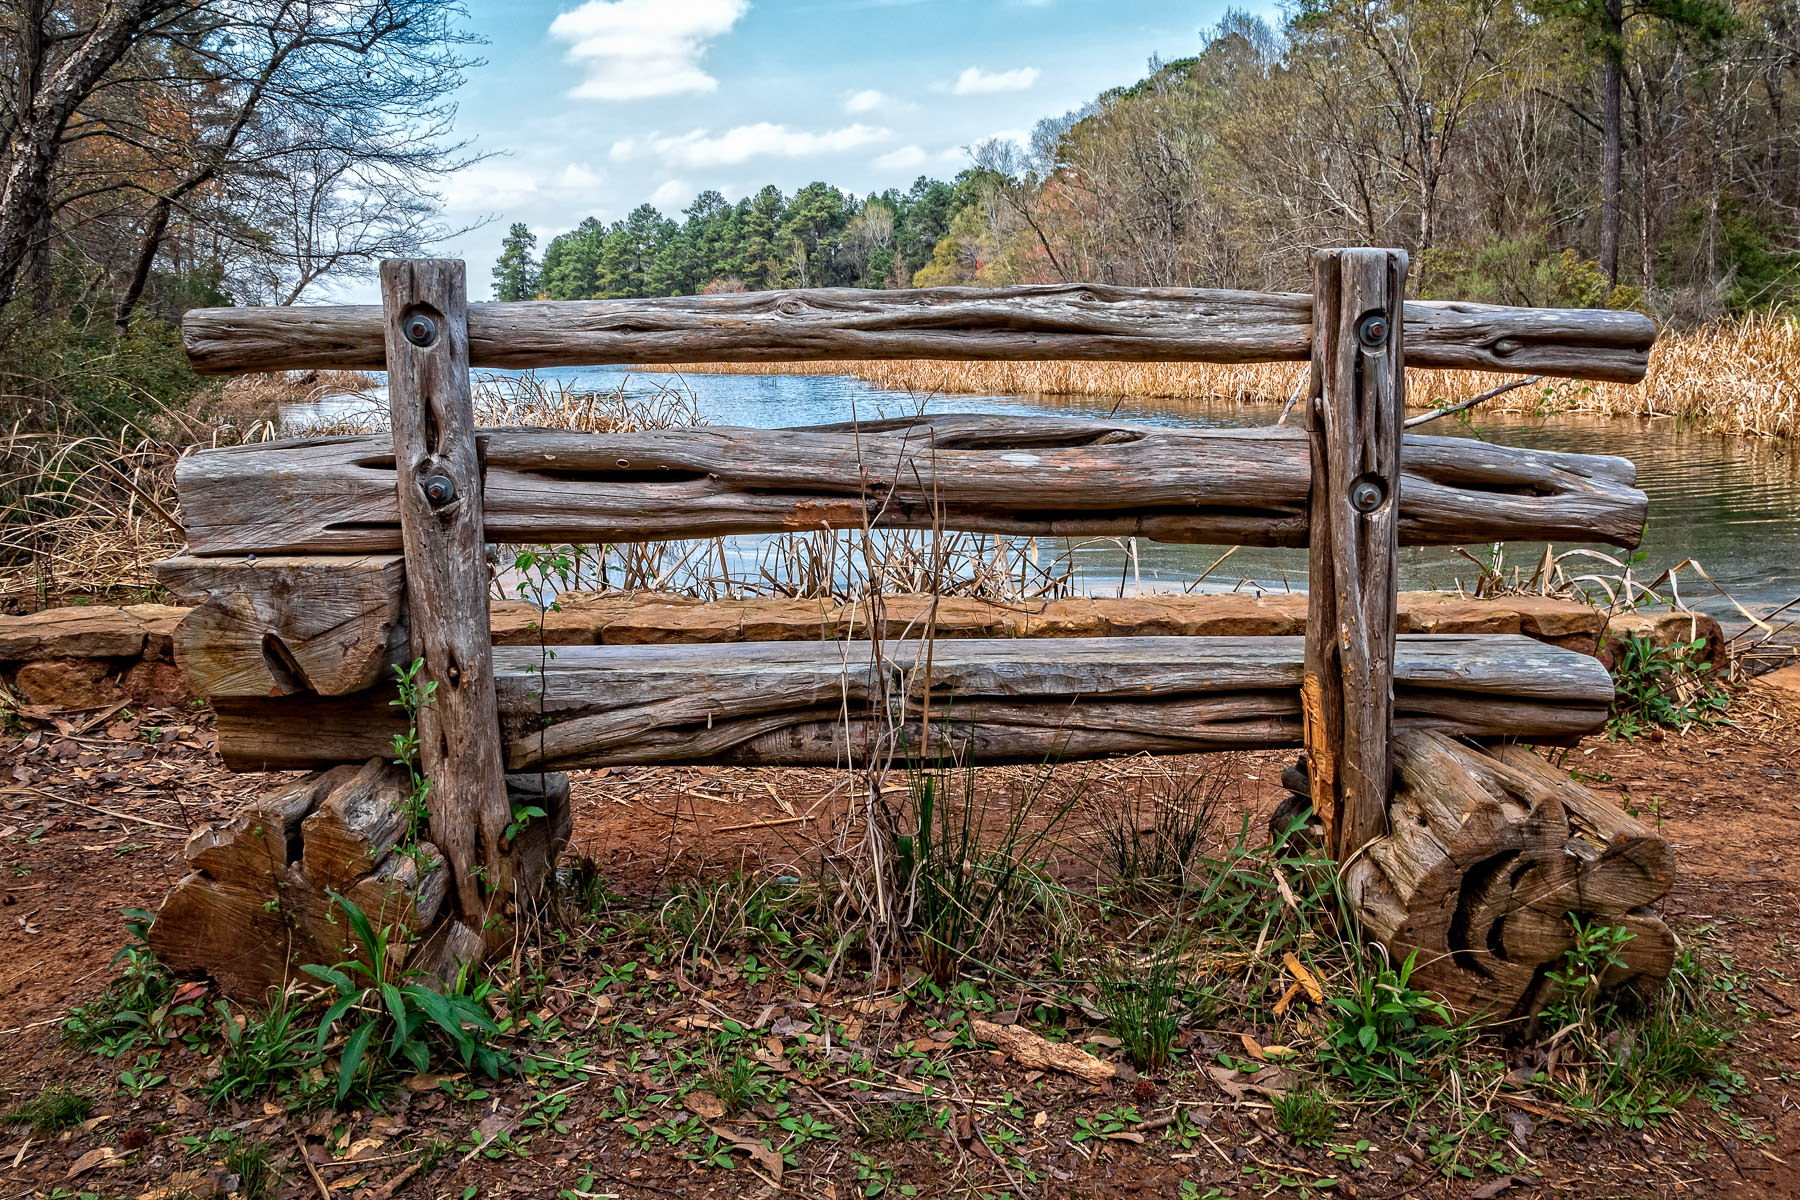 A bench provides a lakeside view at Texas' Tyler State Park.